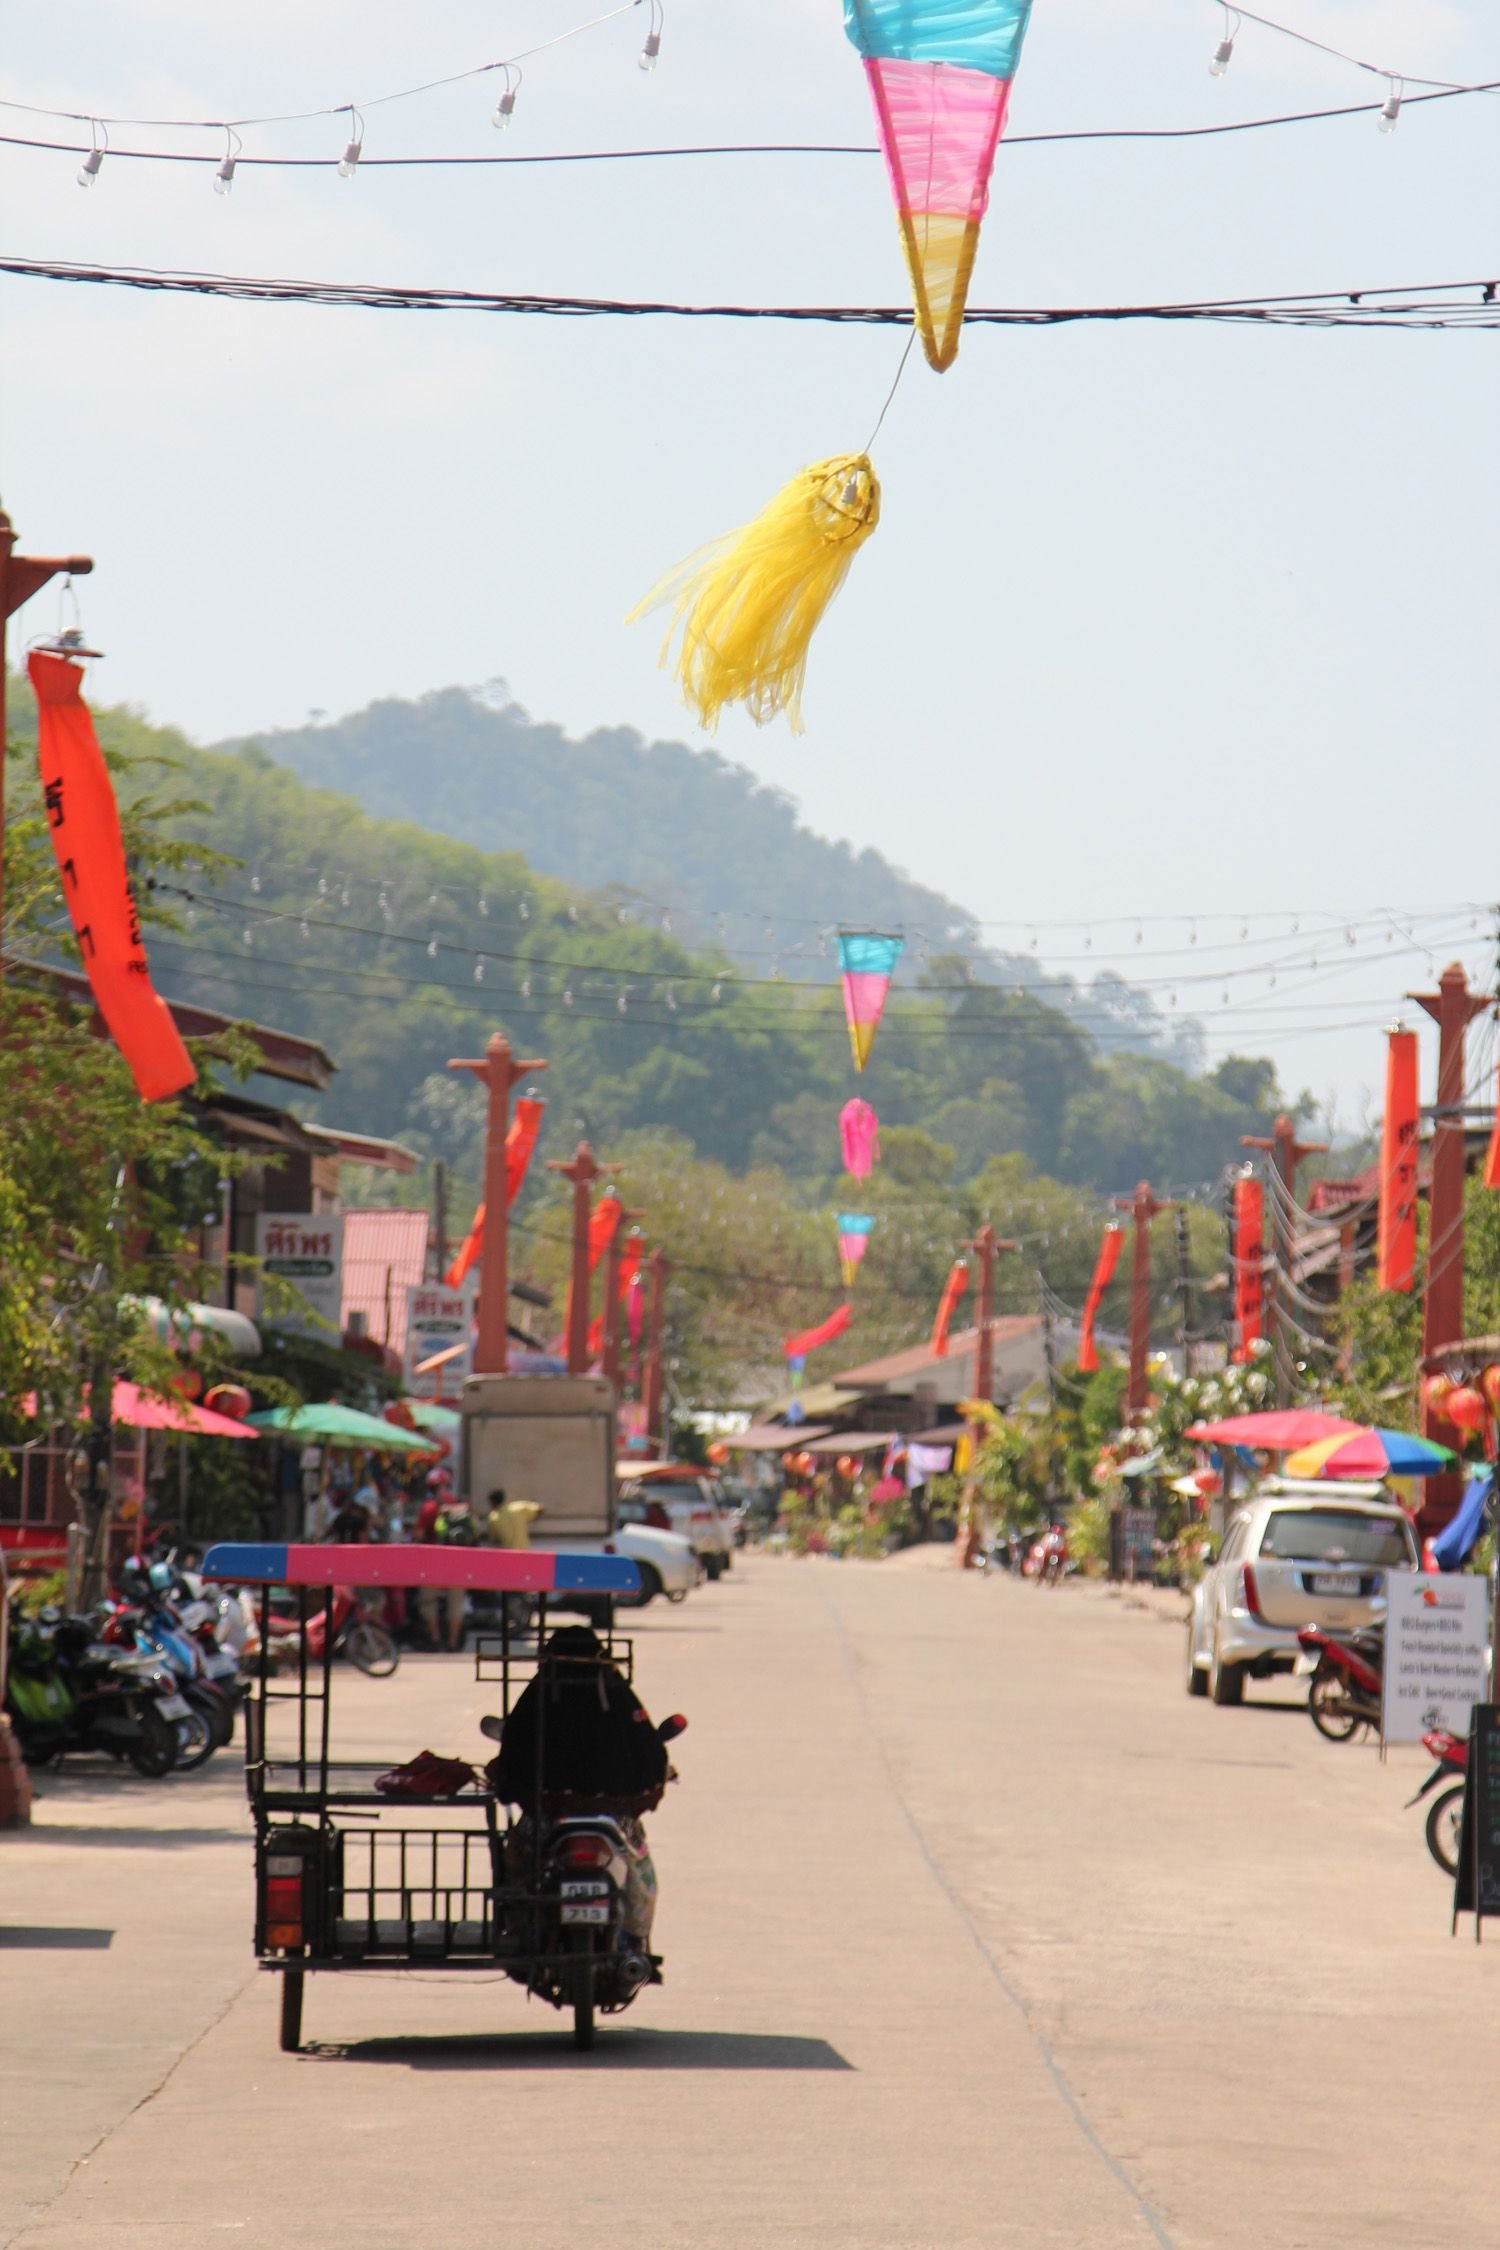 Lanta Old Town on Koh Lanta's east coast was once the port